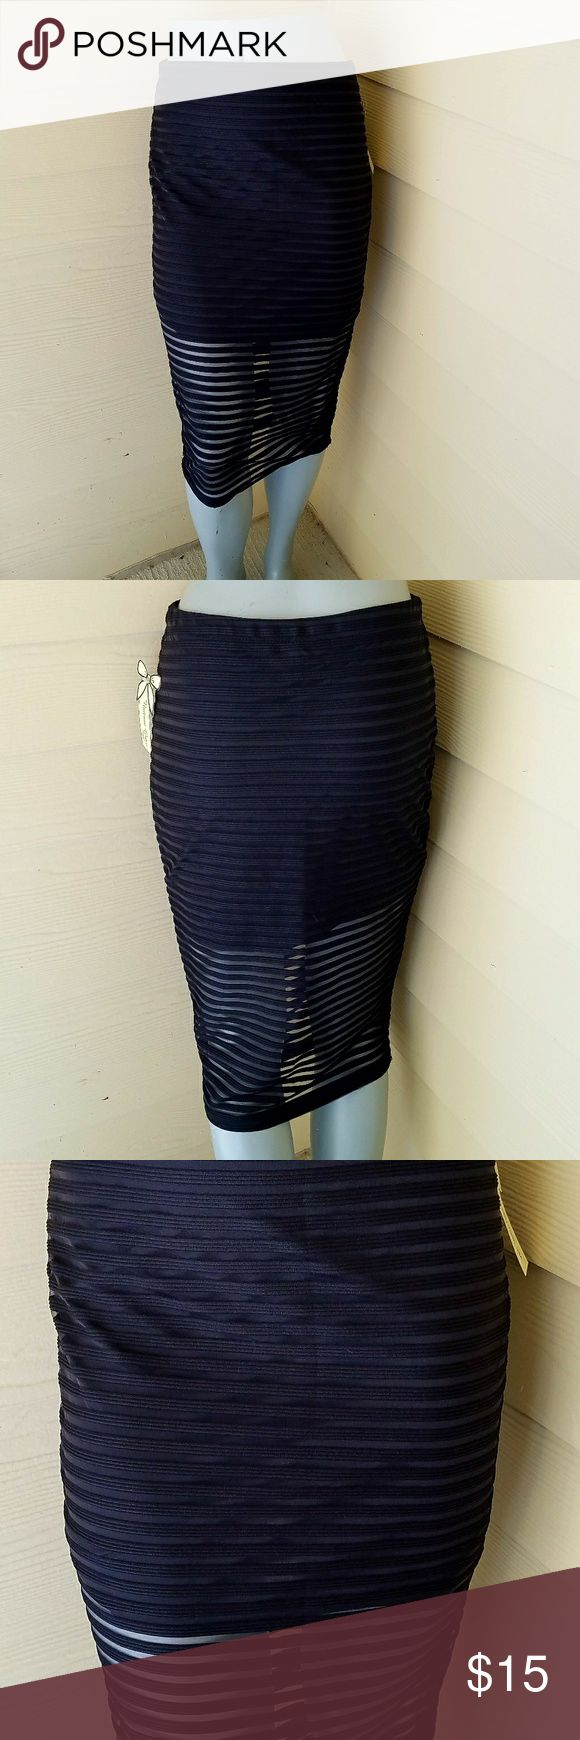 Black pencil skirt See thru pencil skirt.  Lined at top portion. Vivienne Grace Skirts Pencil